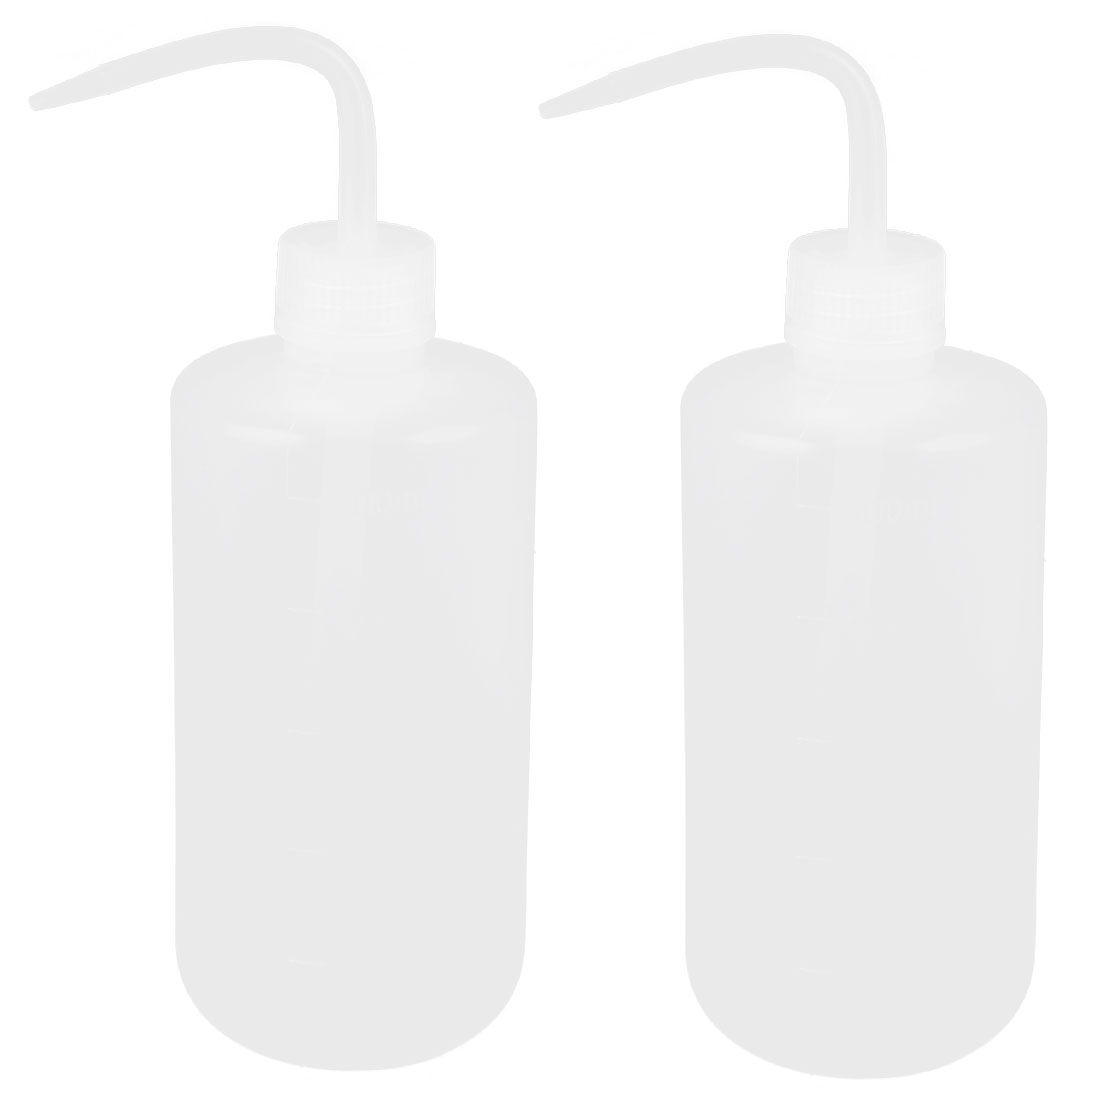 Lab Right Angle Bent Tip Plastic Liquid Storage Squeeze Bottle Dispenser 500mL 2 Pcs